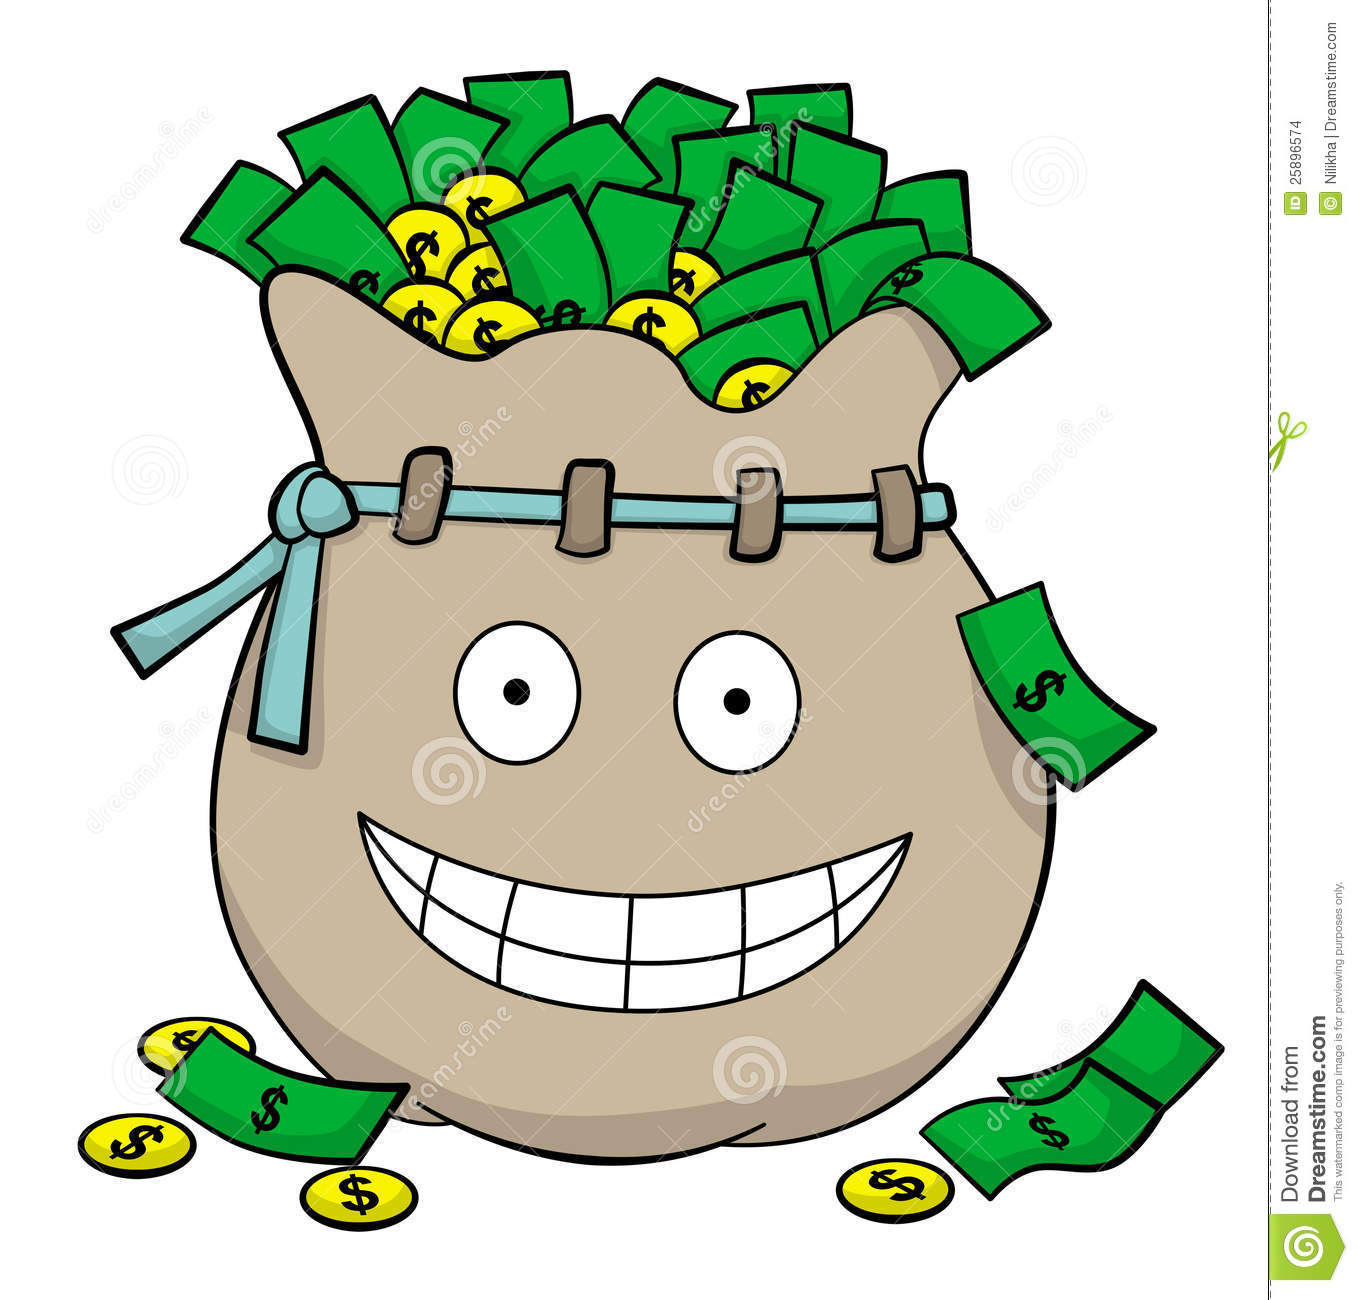 cute illustration of a bag full of money with a smiling face.